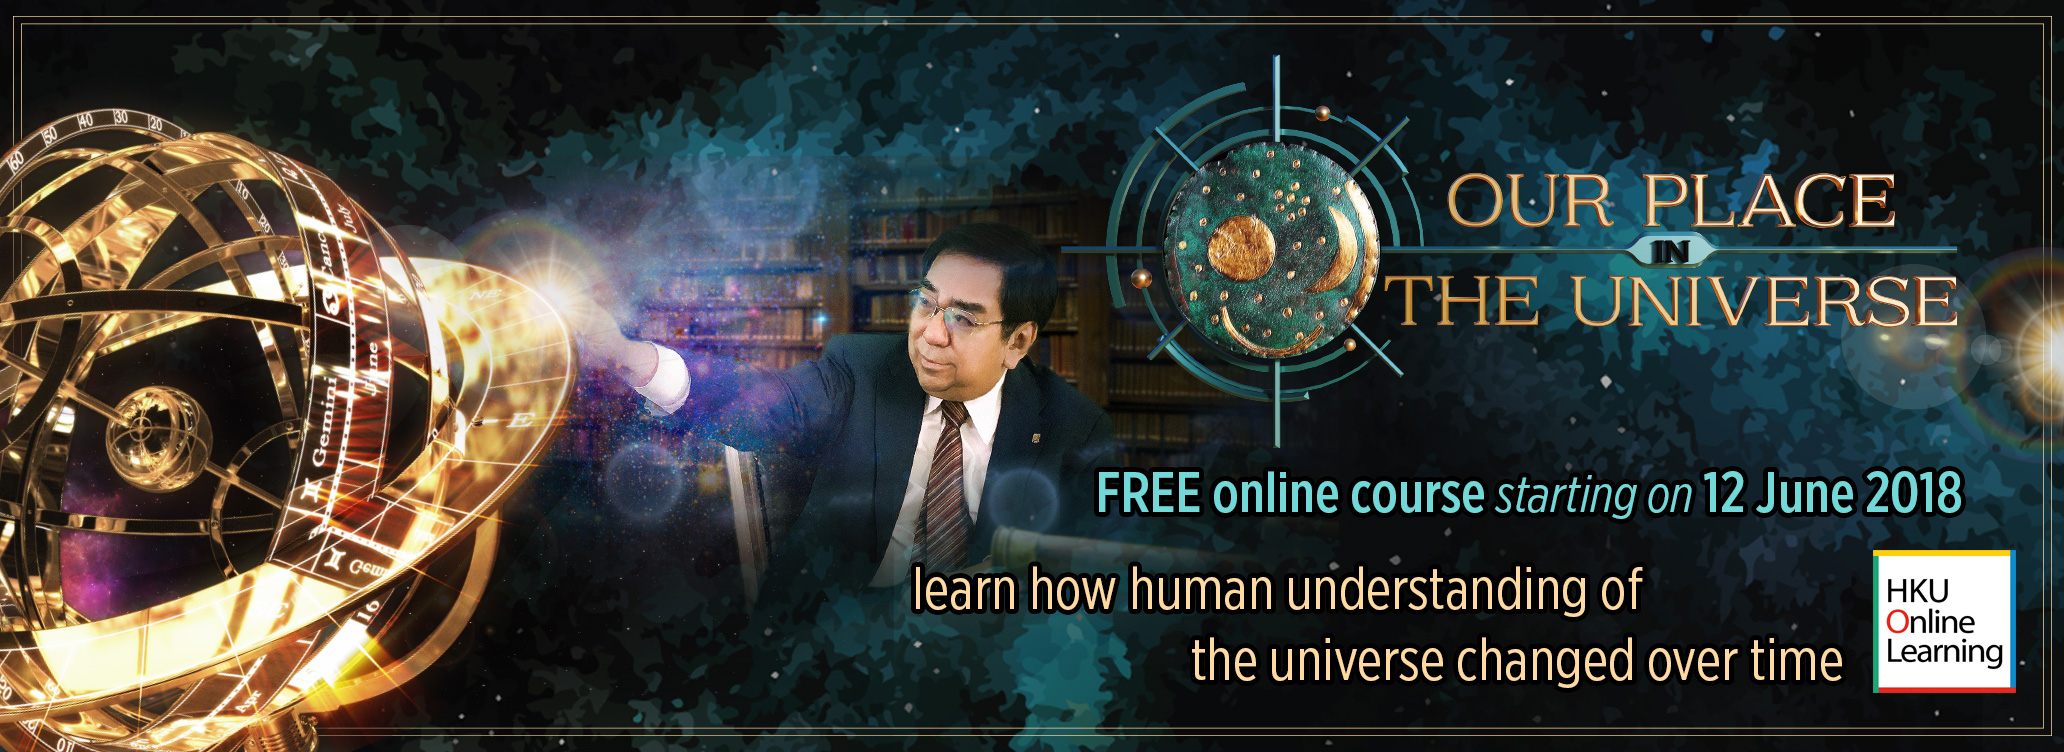 finding-our-place-in-the-universe-a-mooc